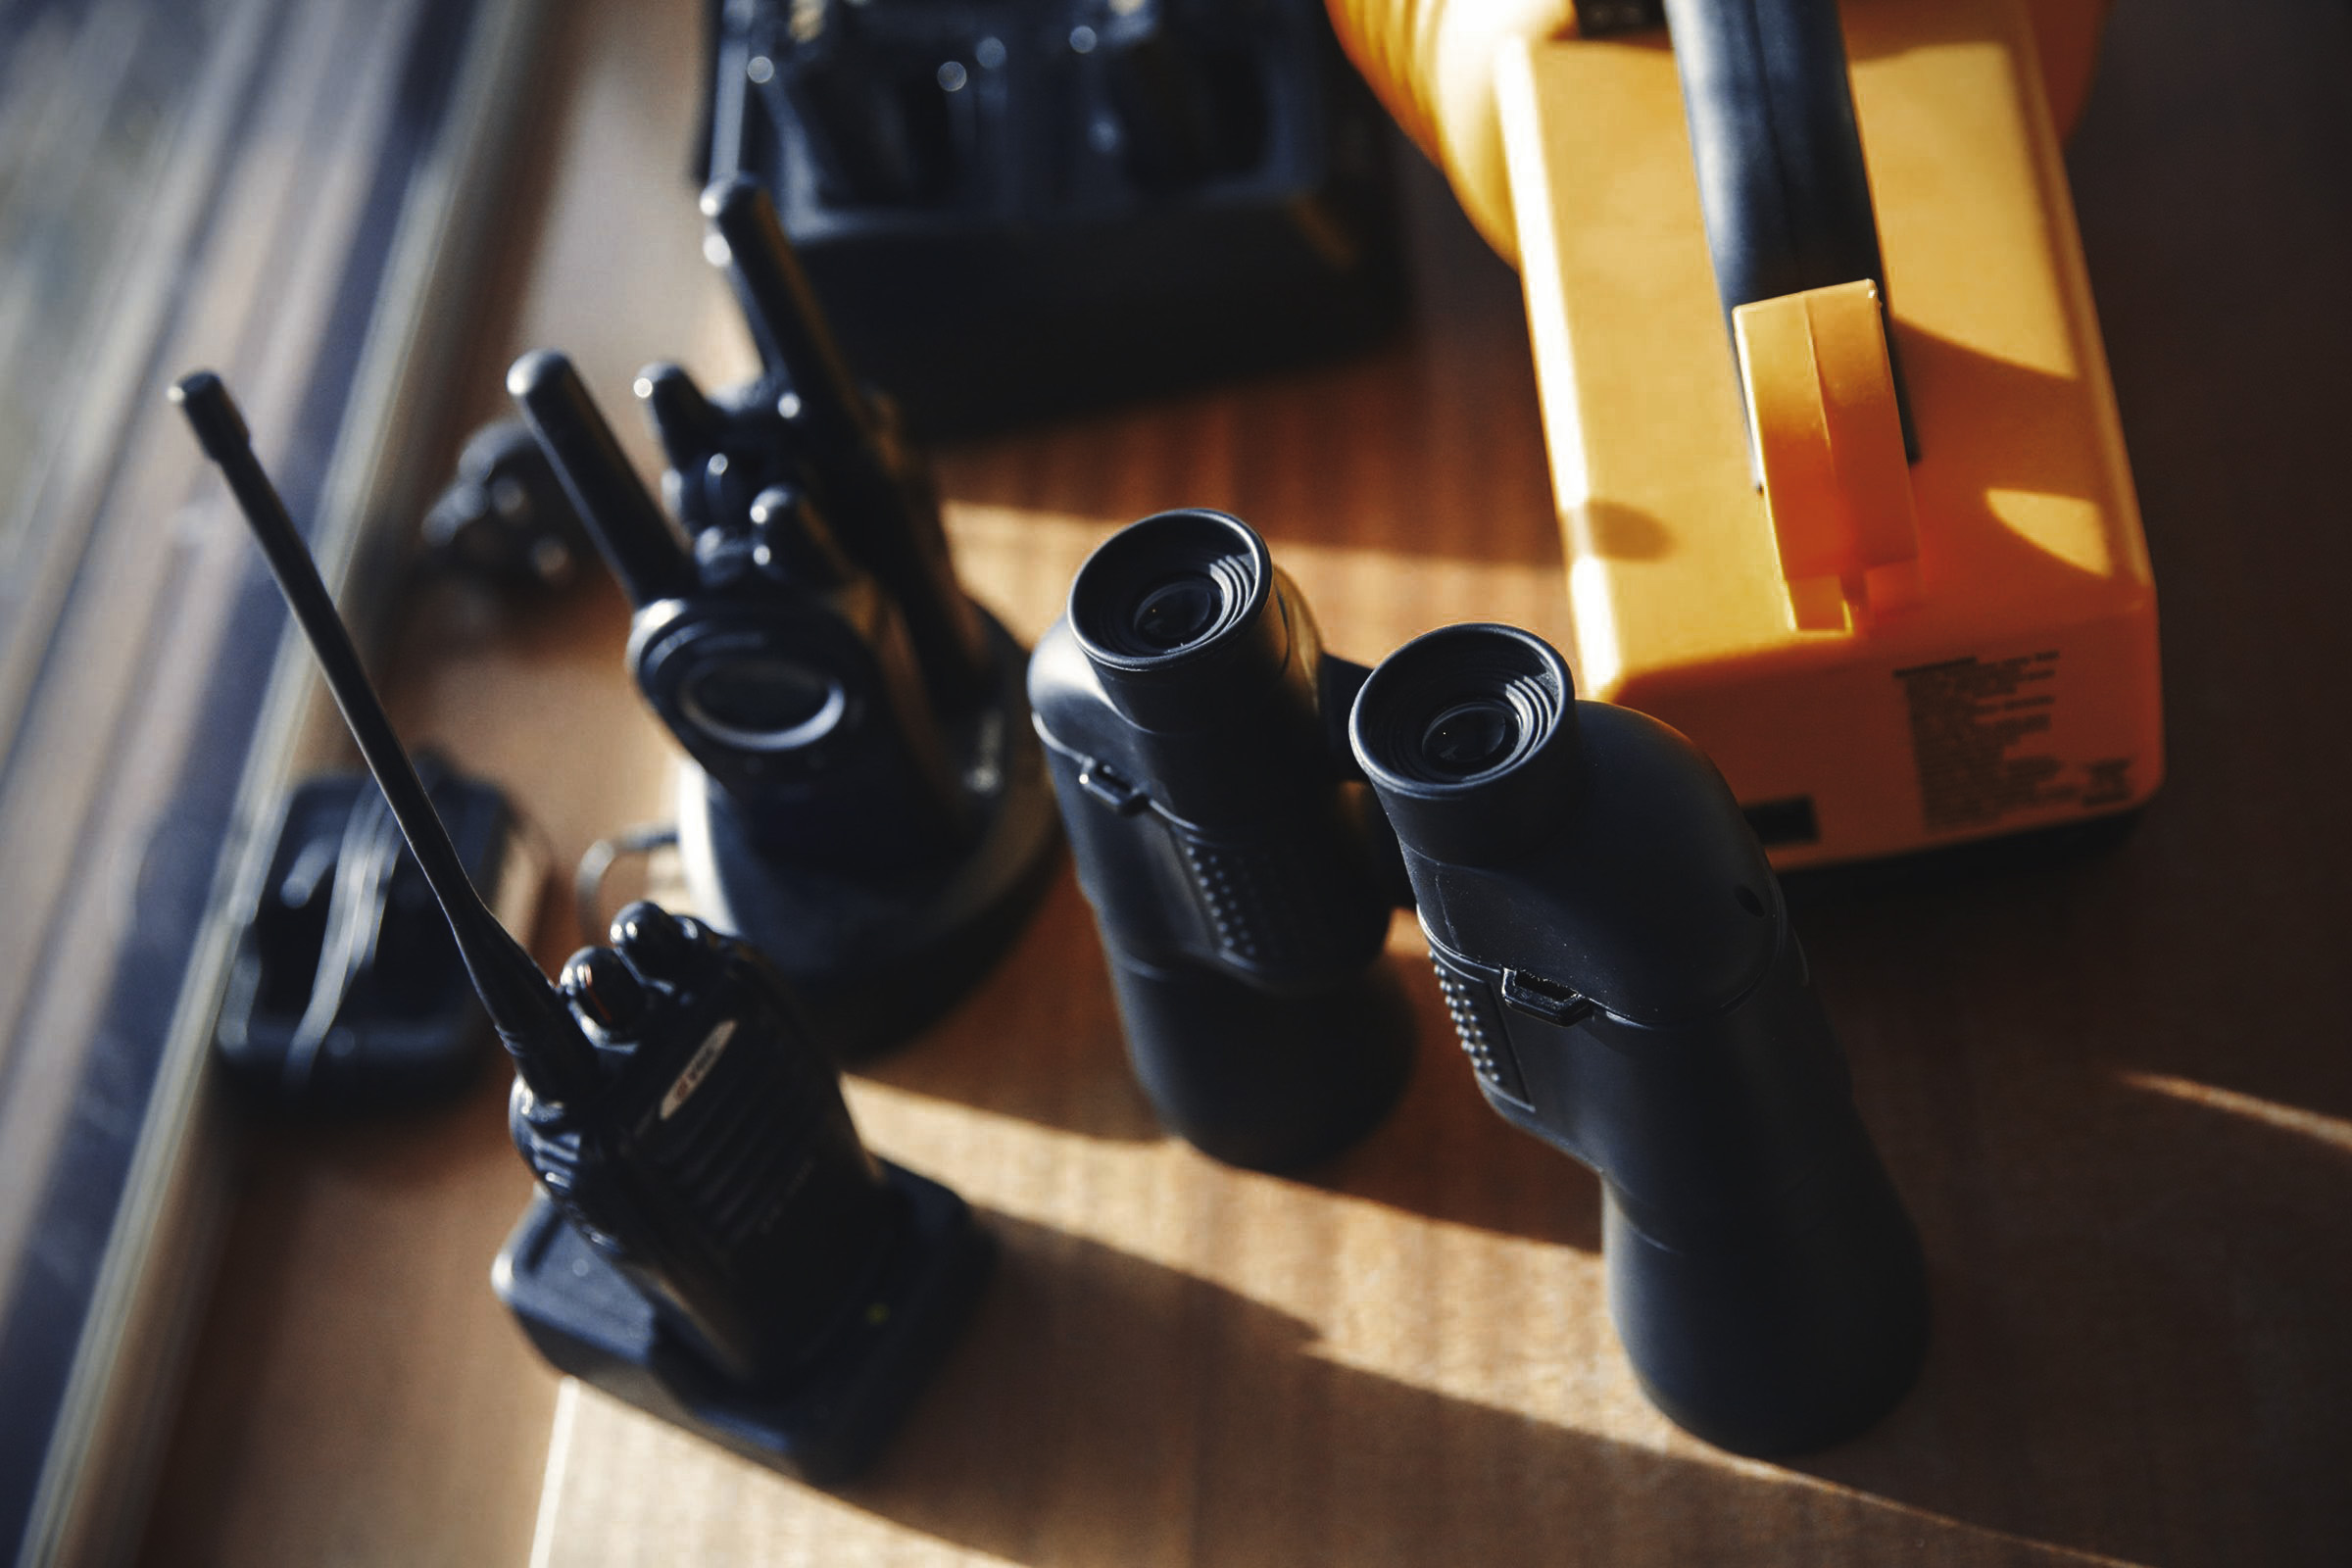 still life of walkie talkie radios, binoculars and other maritime equiopemnt